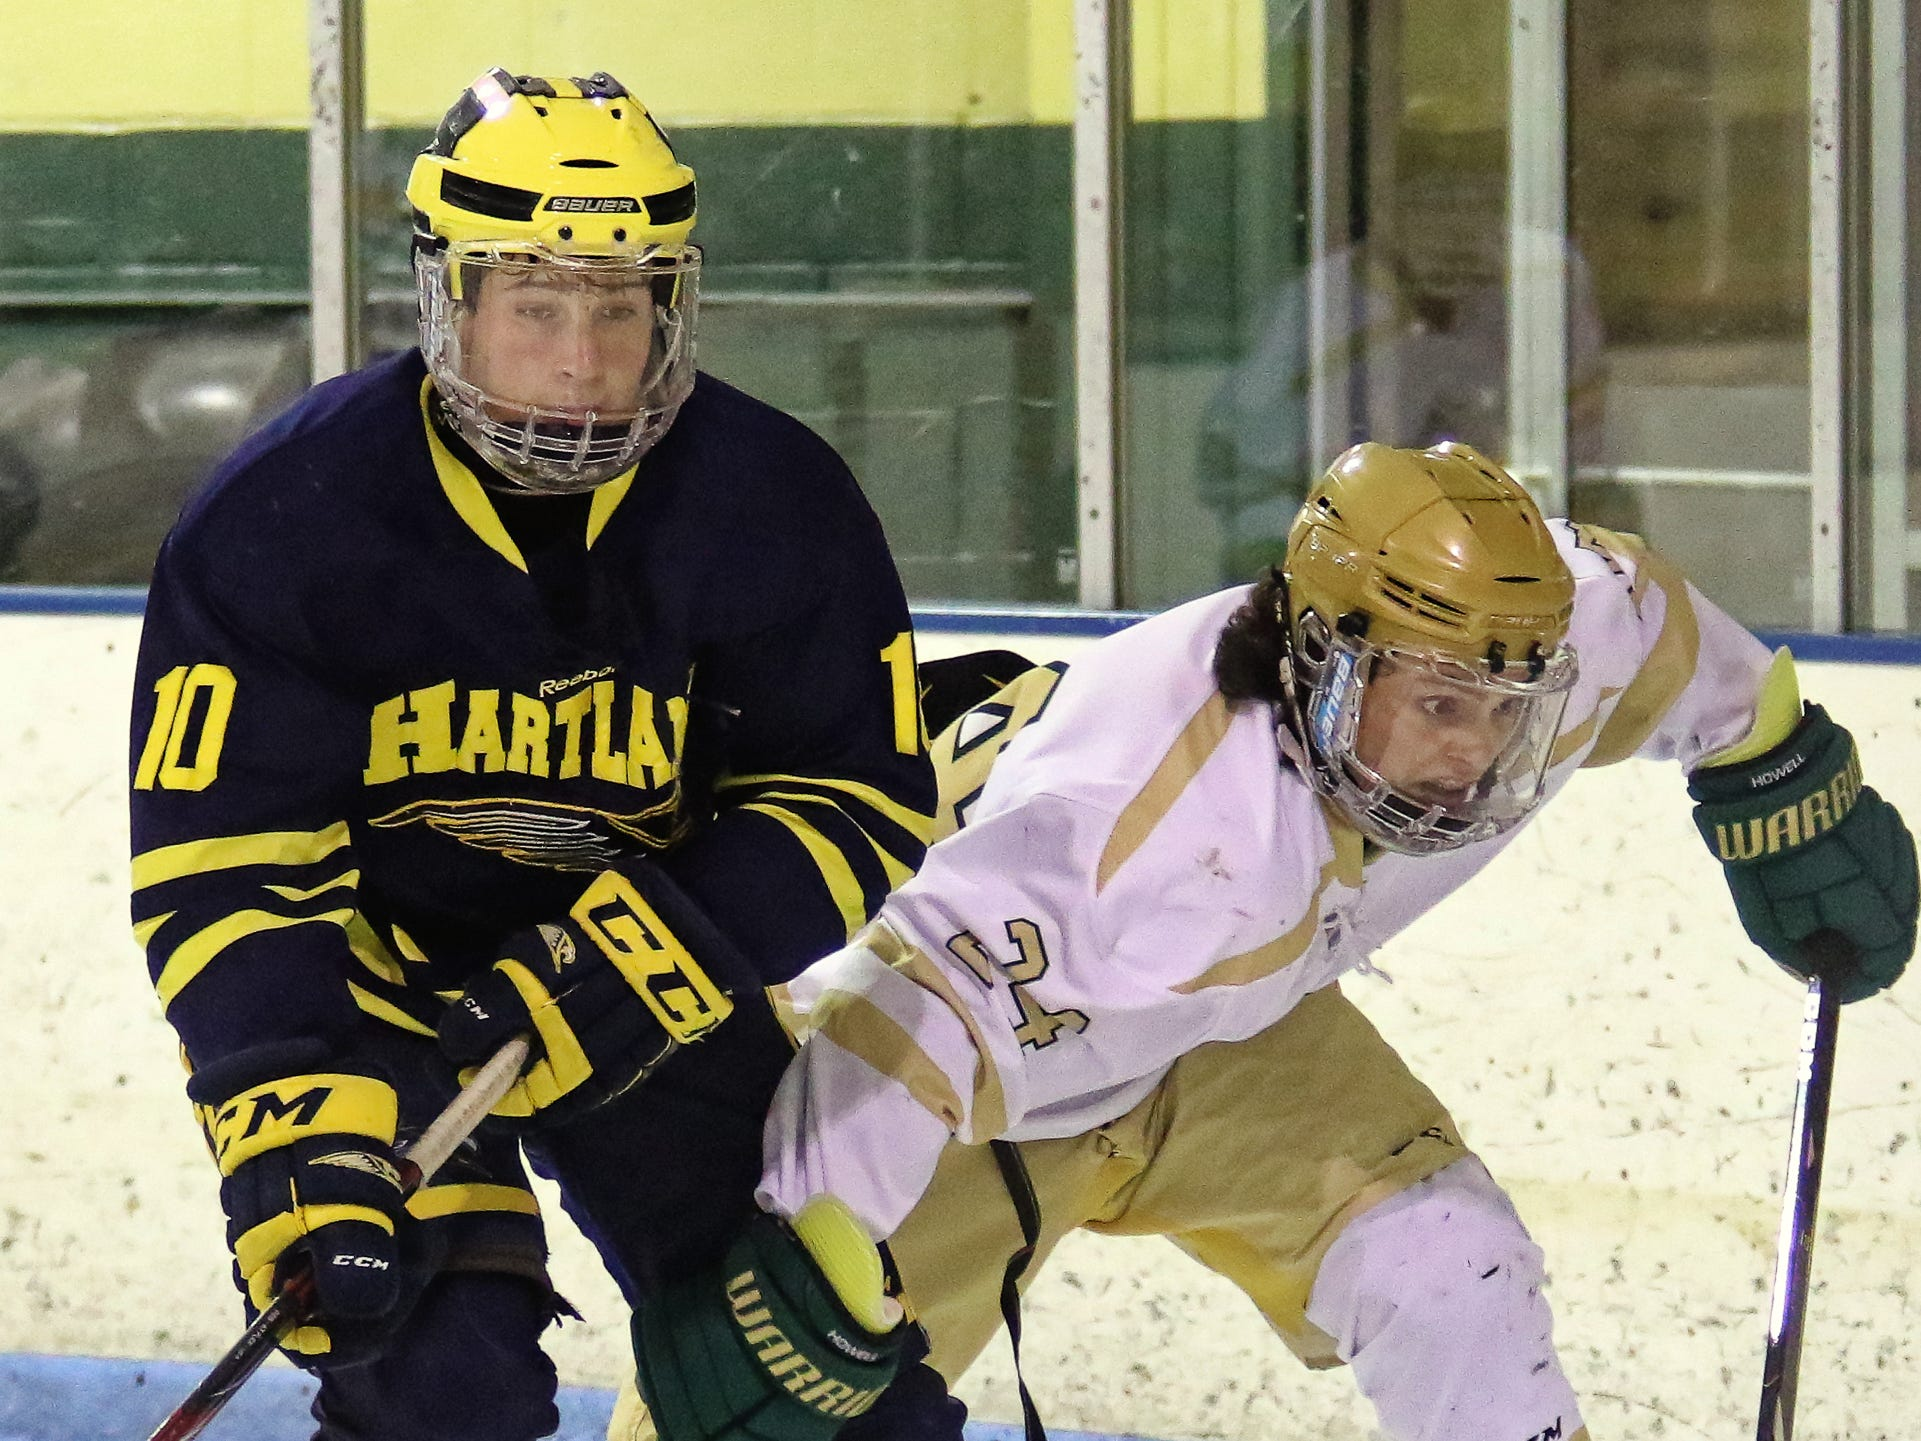 Hartland's Adam Pietila (10) and Howell's Brent Wolf chase down a puck in Hartland's 7-1 victory on Tuesday, Jan. 15, 2019.